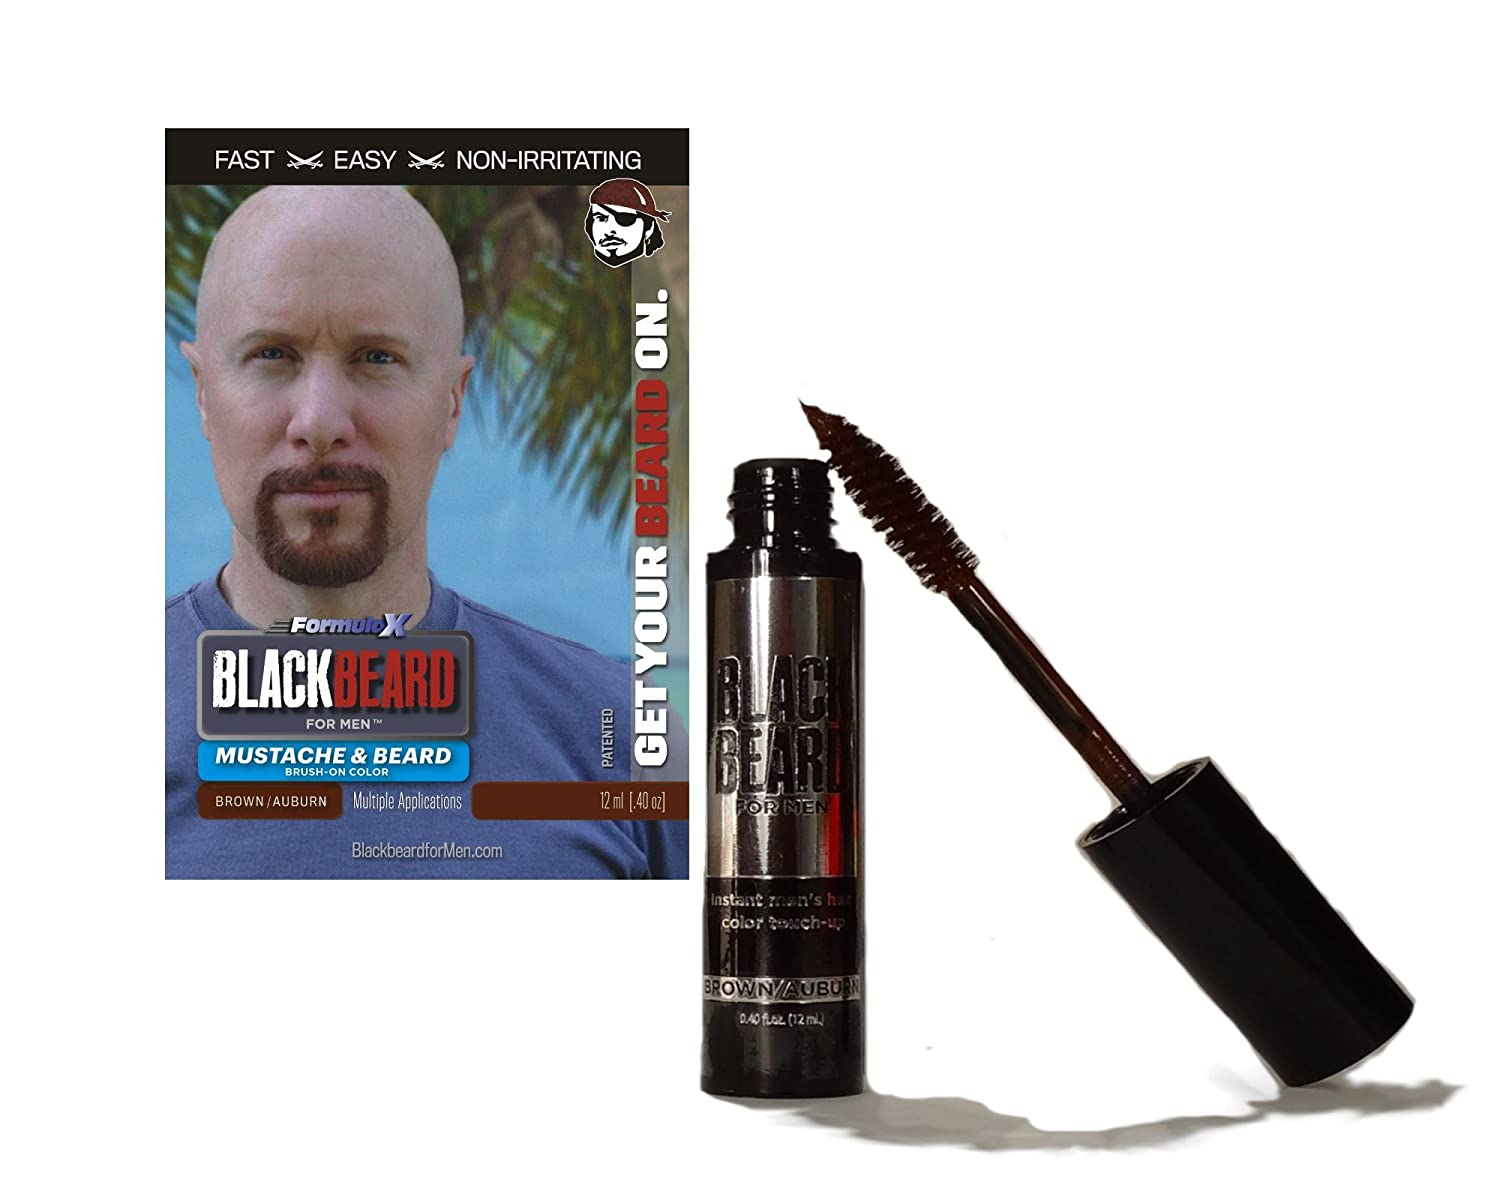 Amazon.com : Blackbeard for Men - Instant Brush-on Beard ...